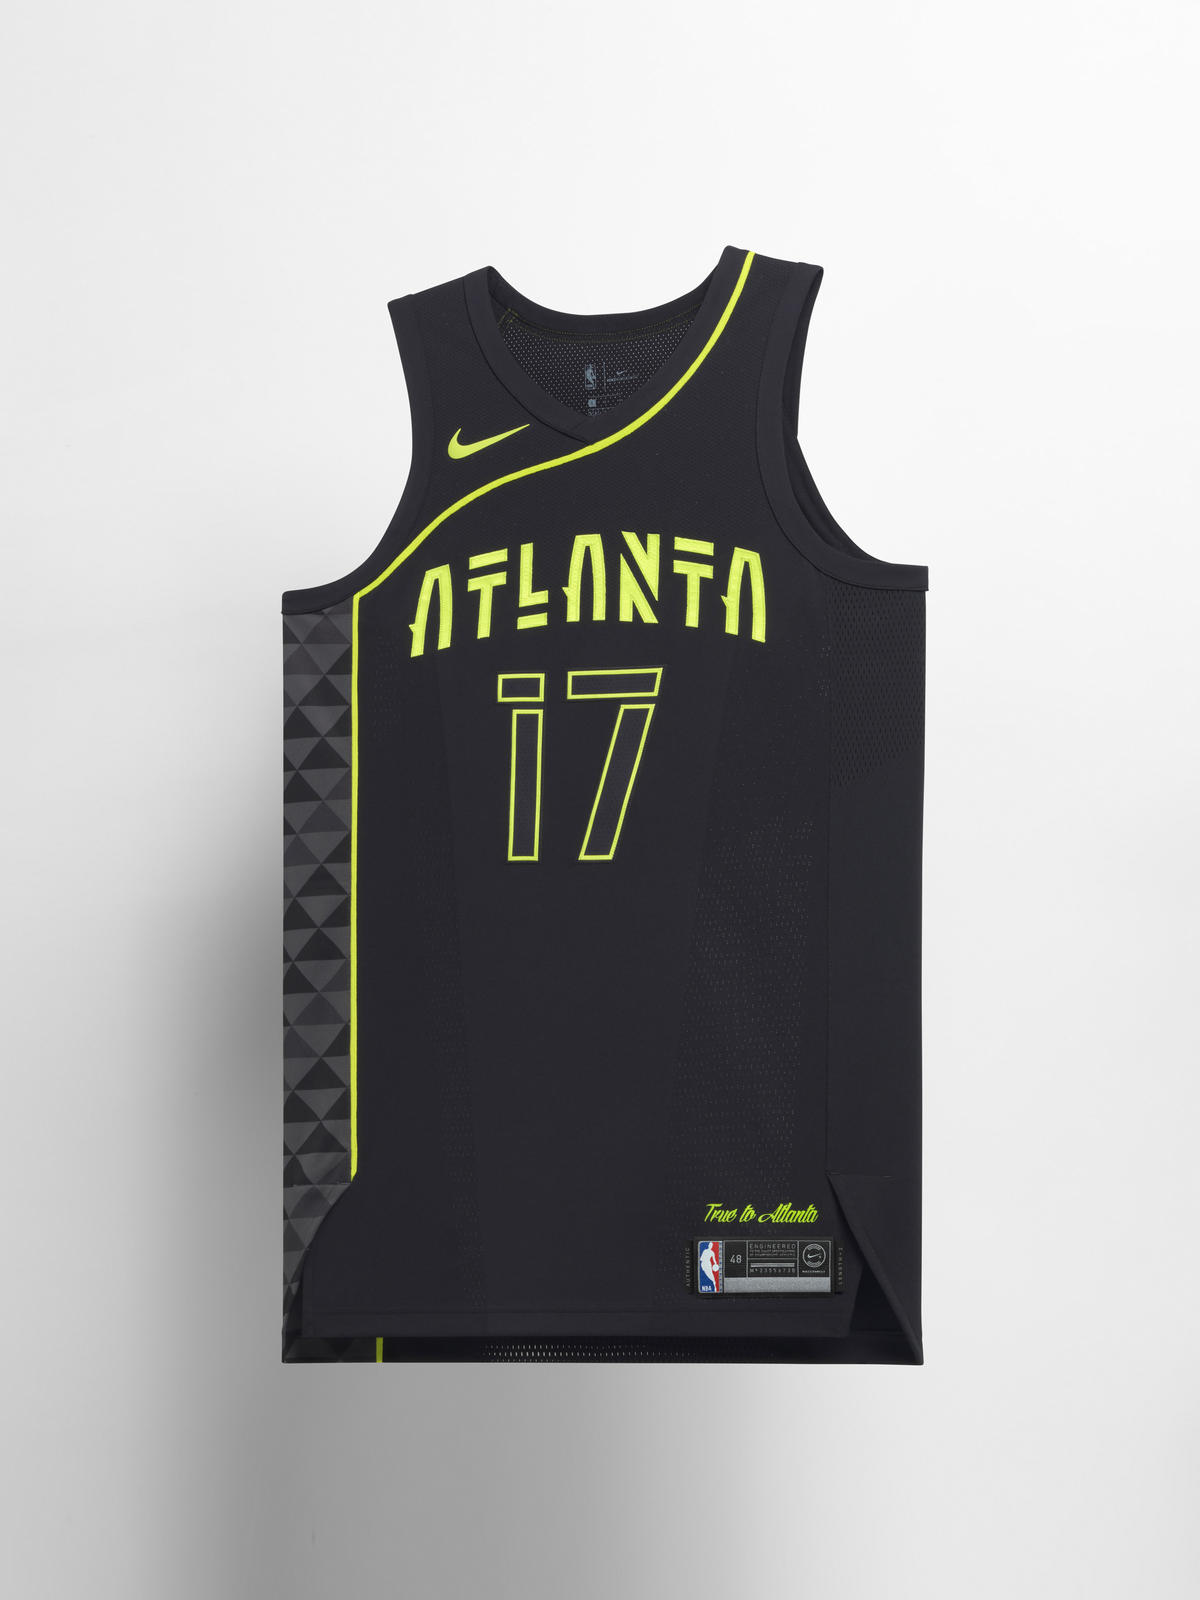 f929d20ada3f NBA City Edition jerseys  Photos of the final new Nike jersey